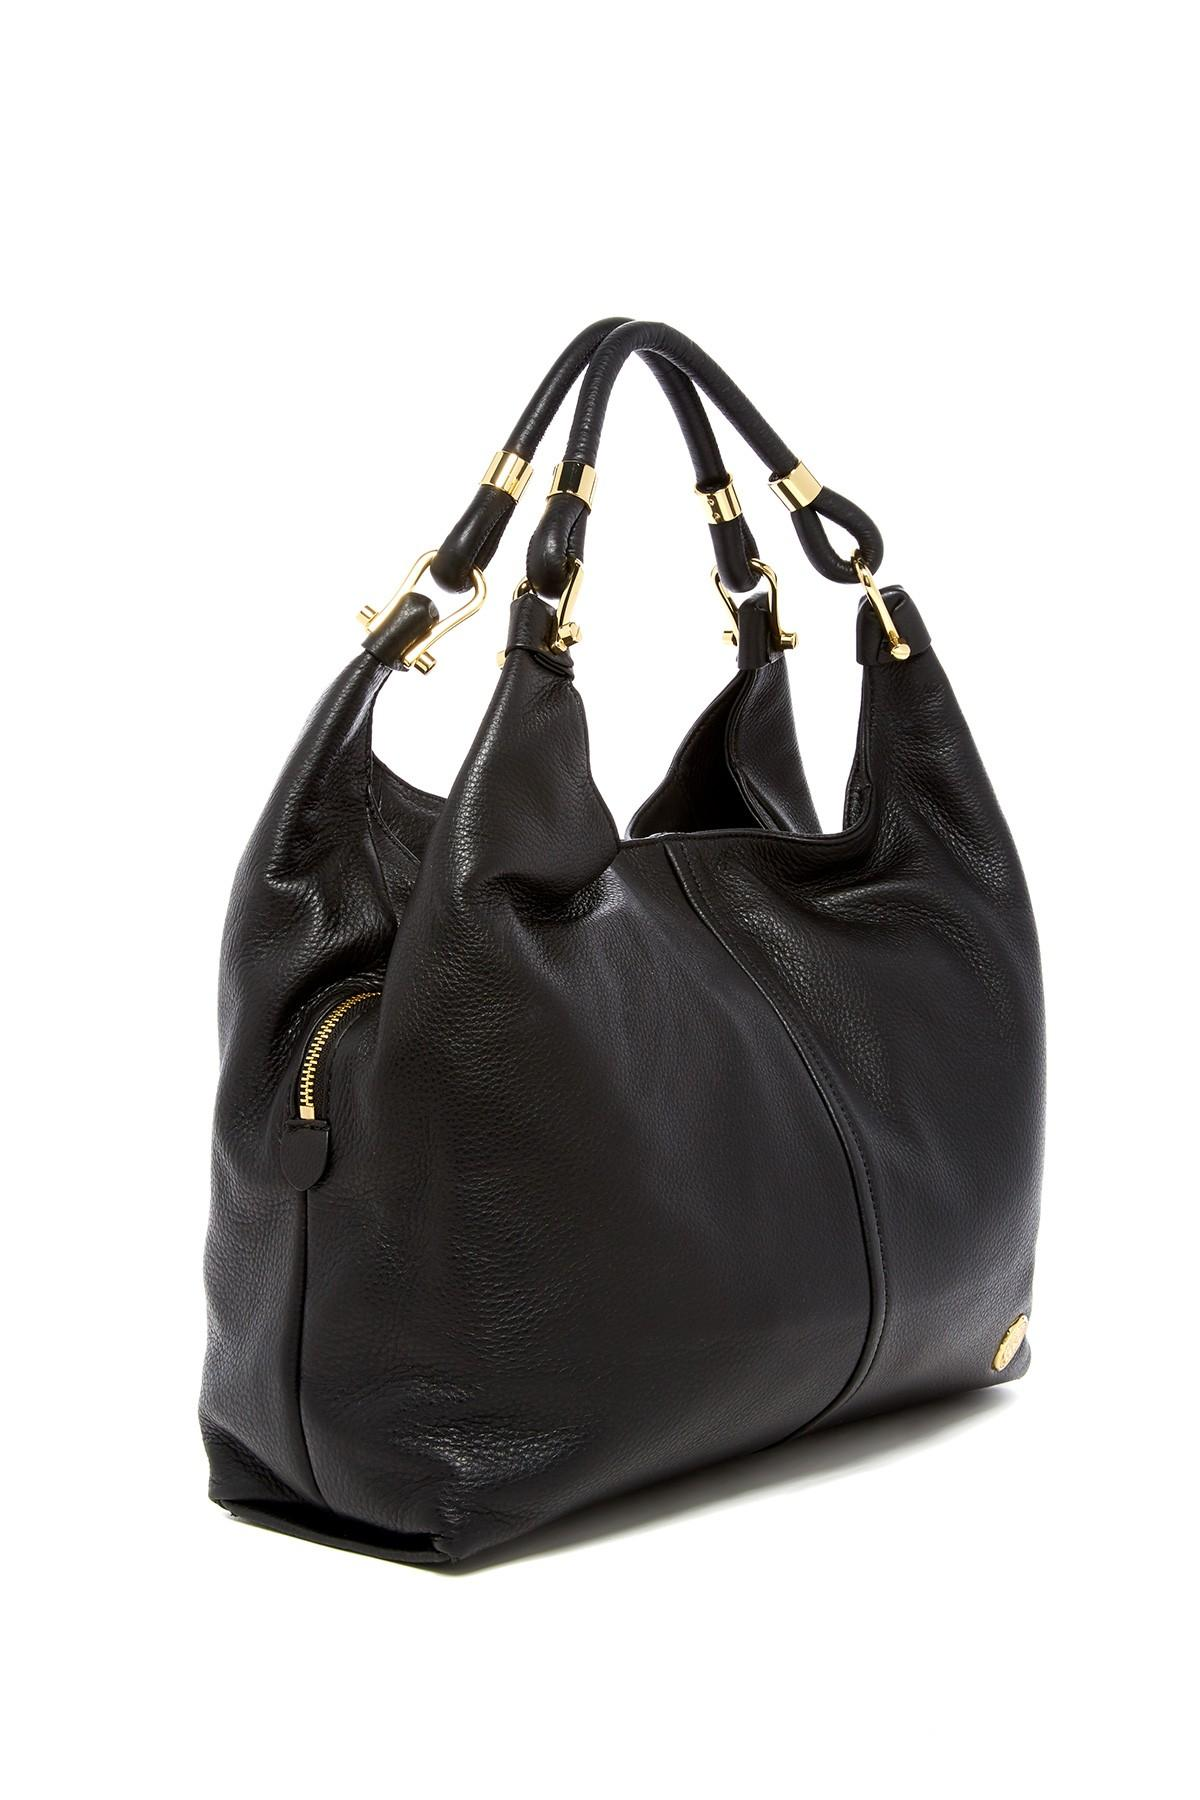 Vince Camuto Aza Leather Tote In Black Lyst